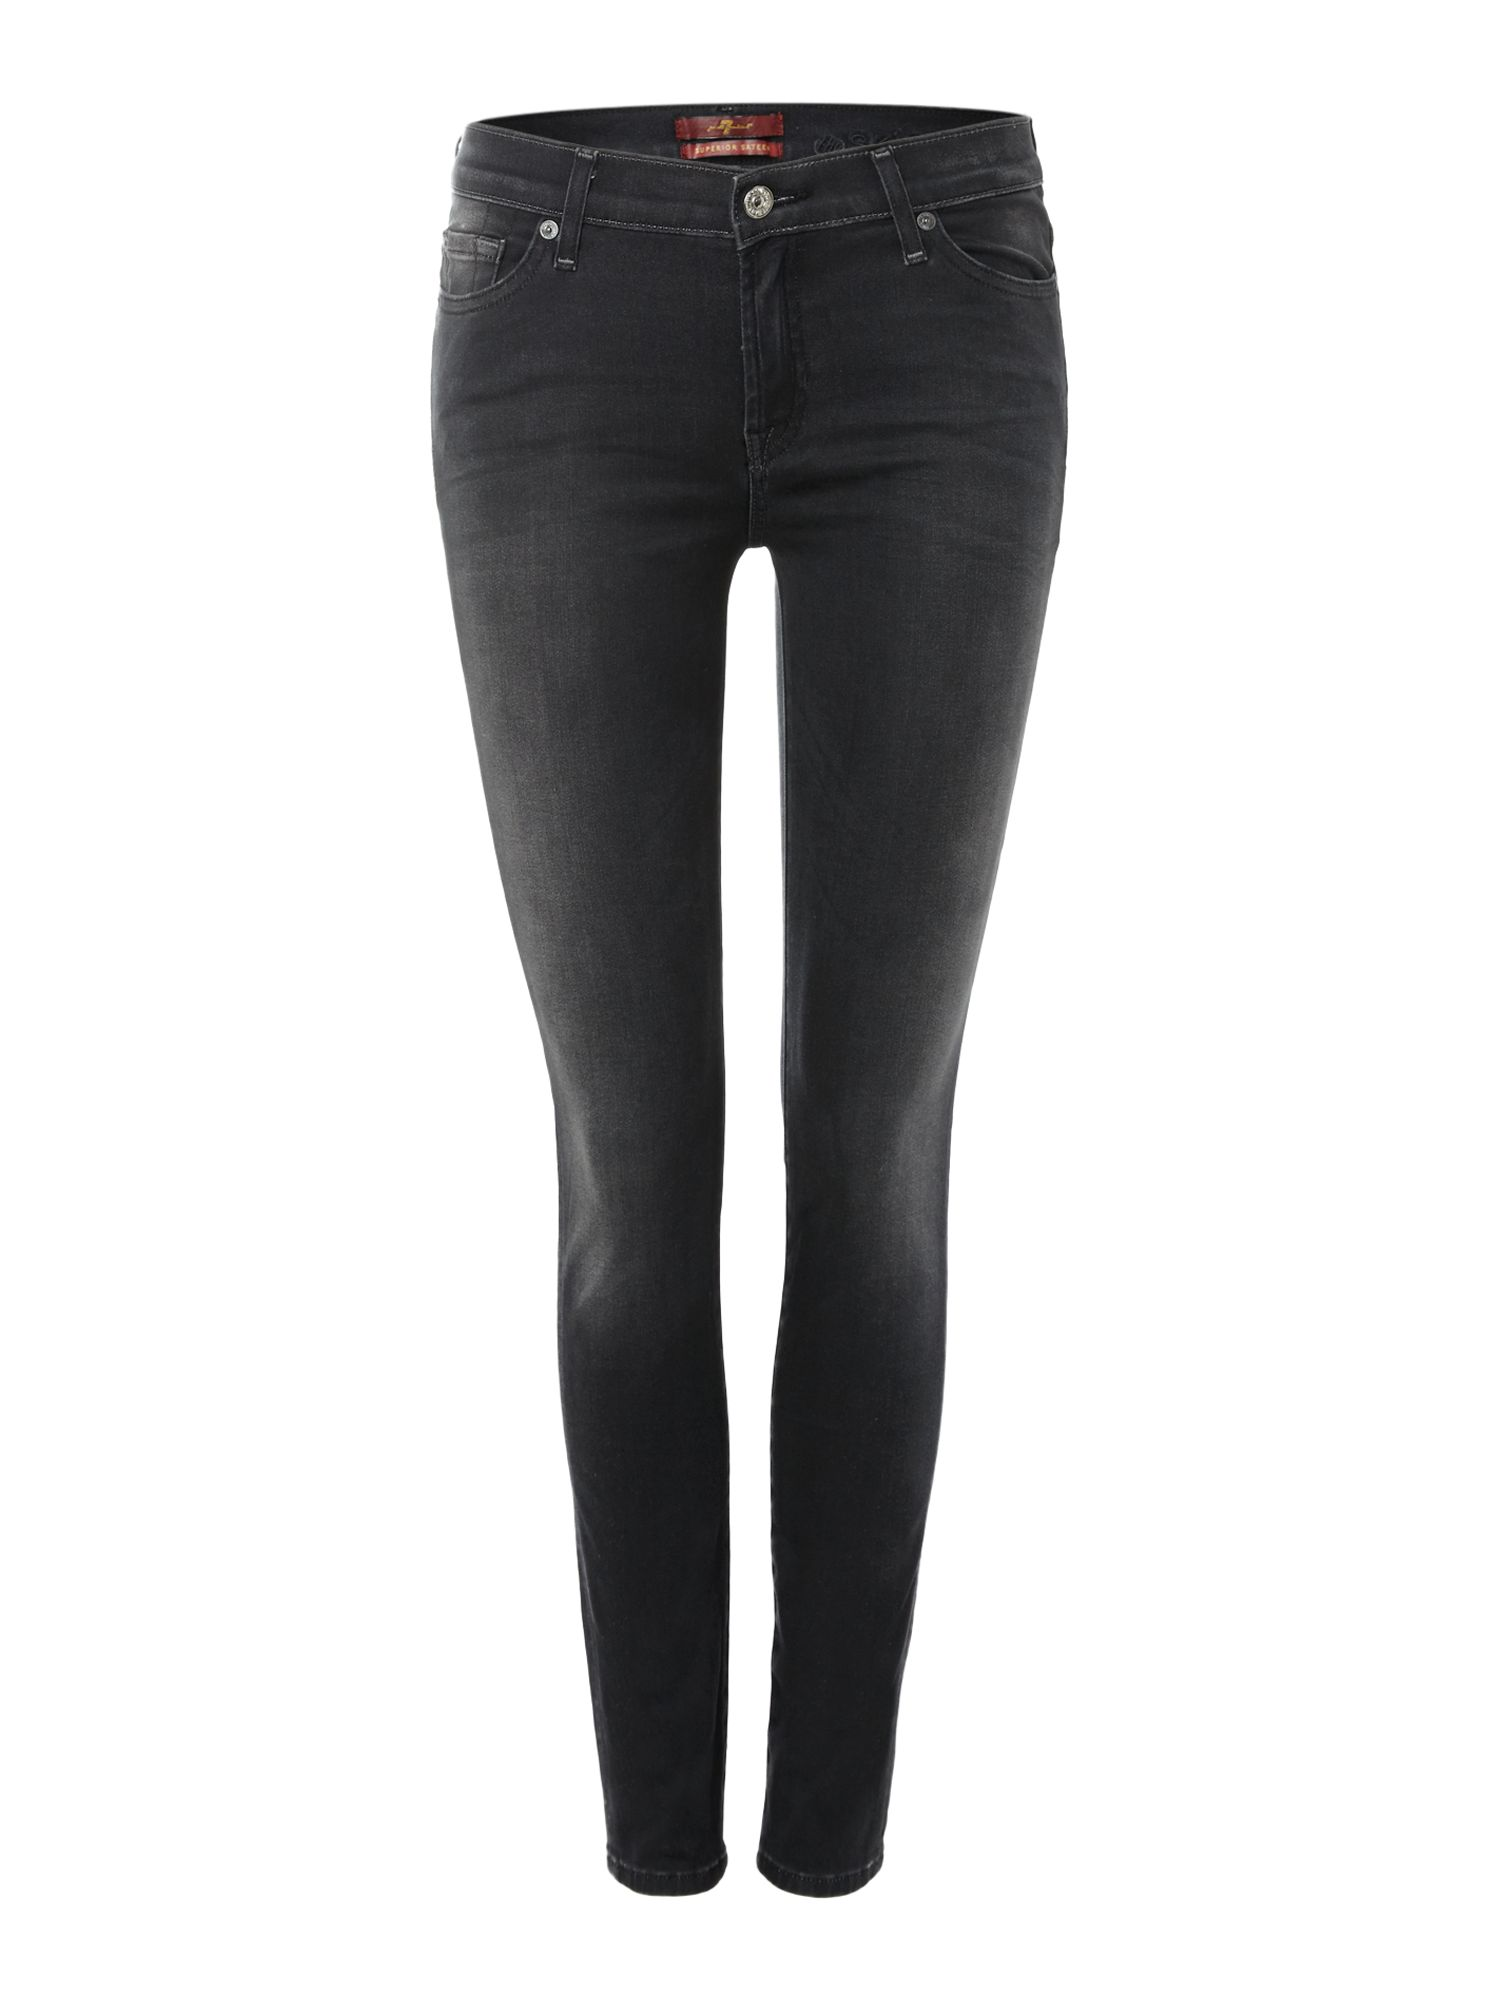 The skinny sateen in black